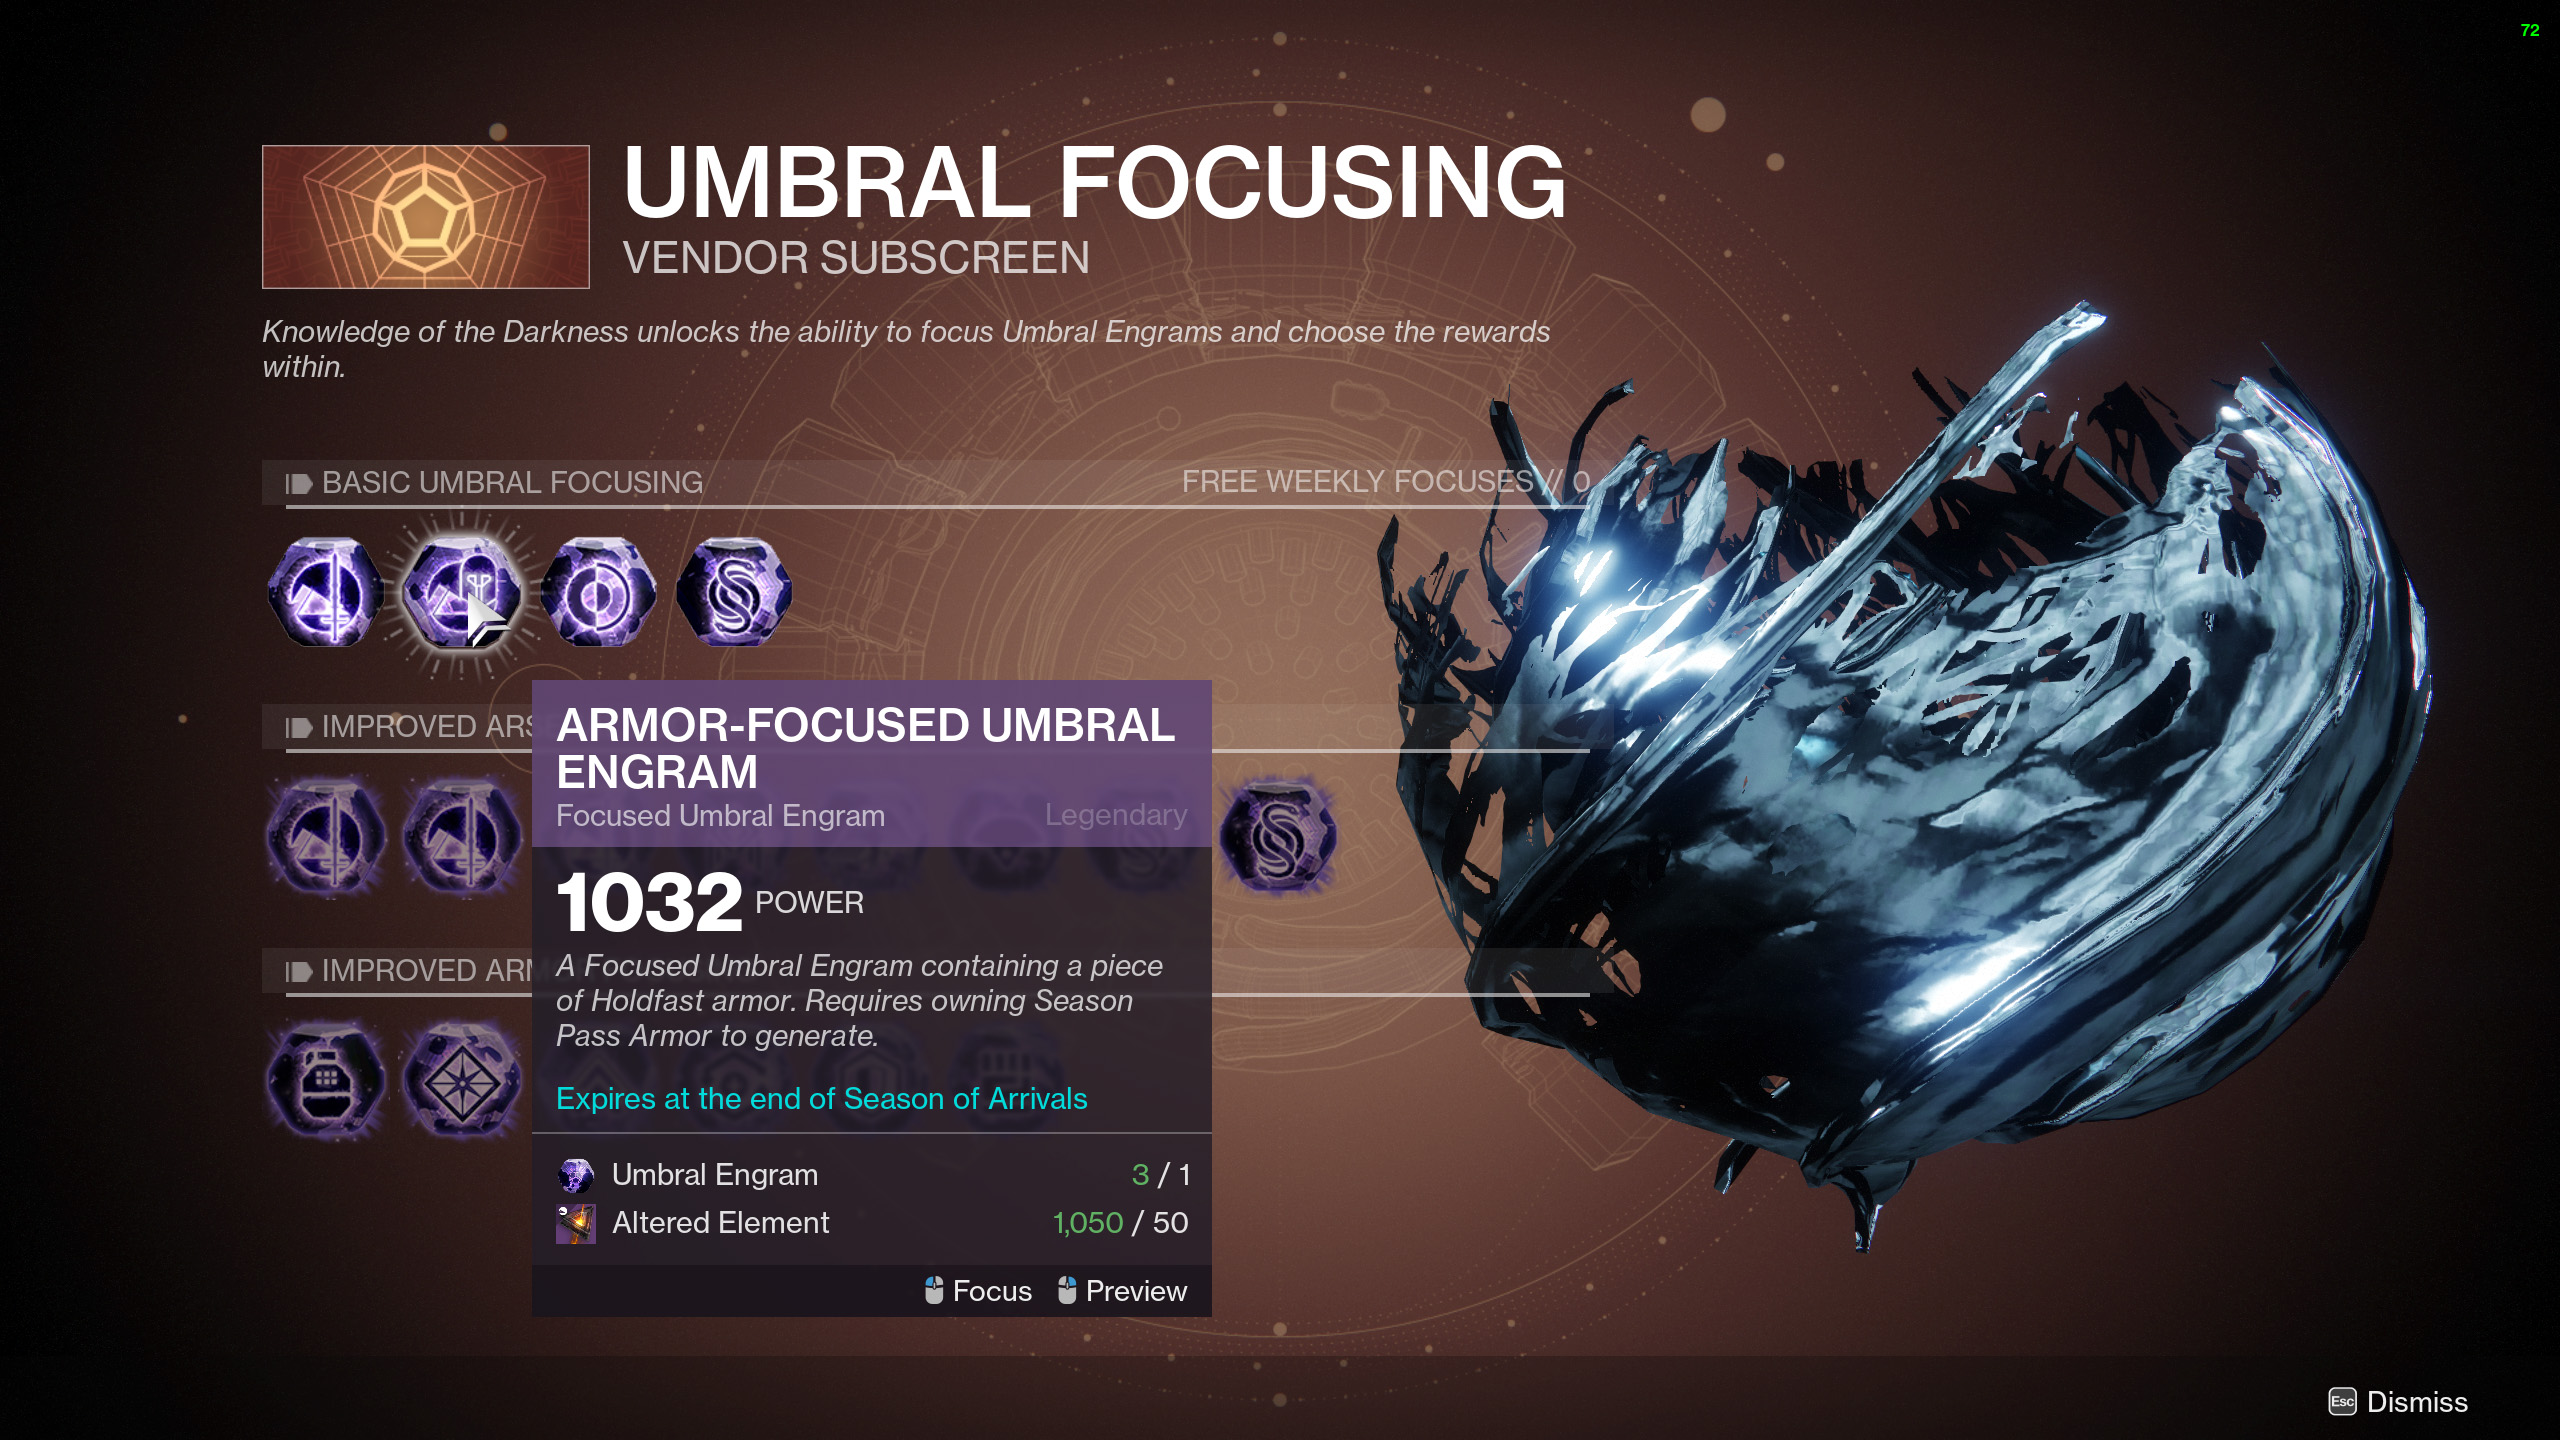 destiny 2 armor-focused umbral engram